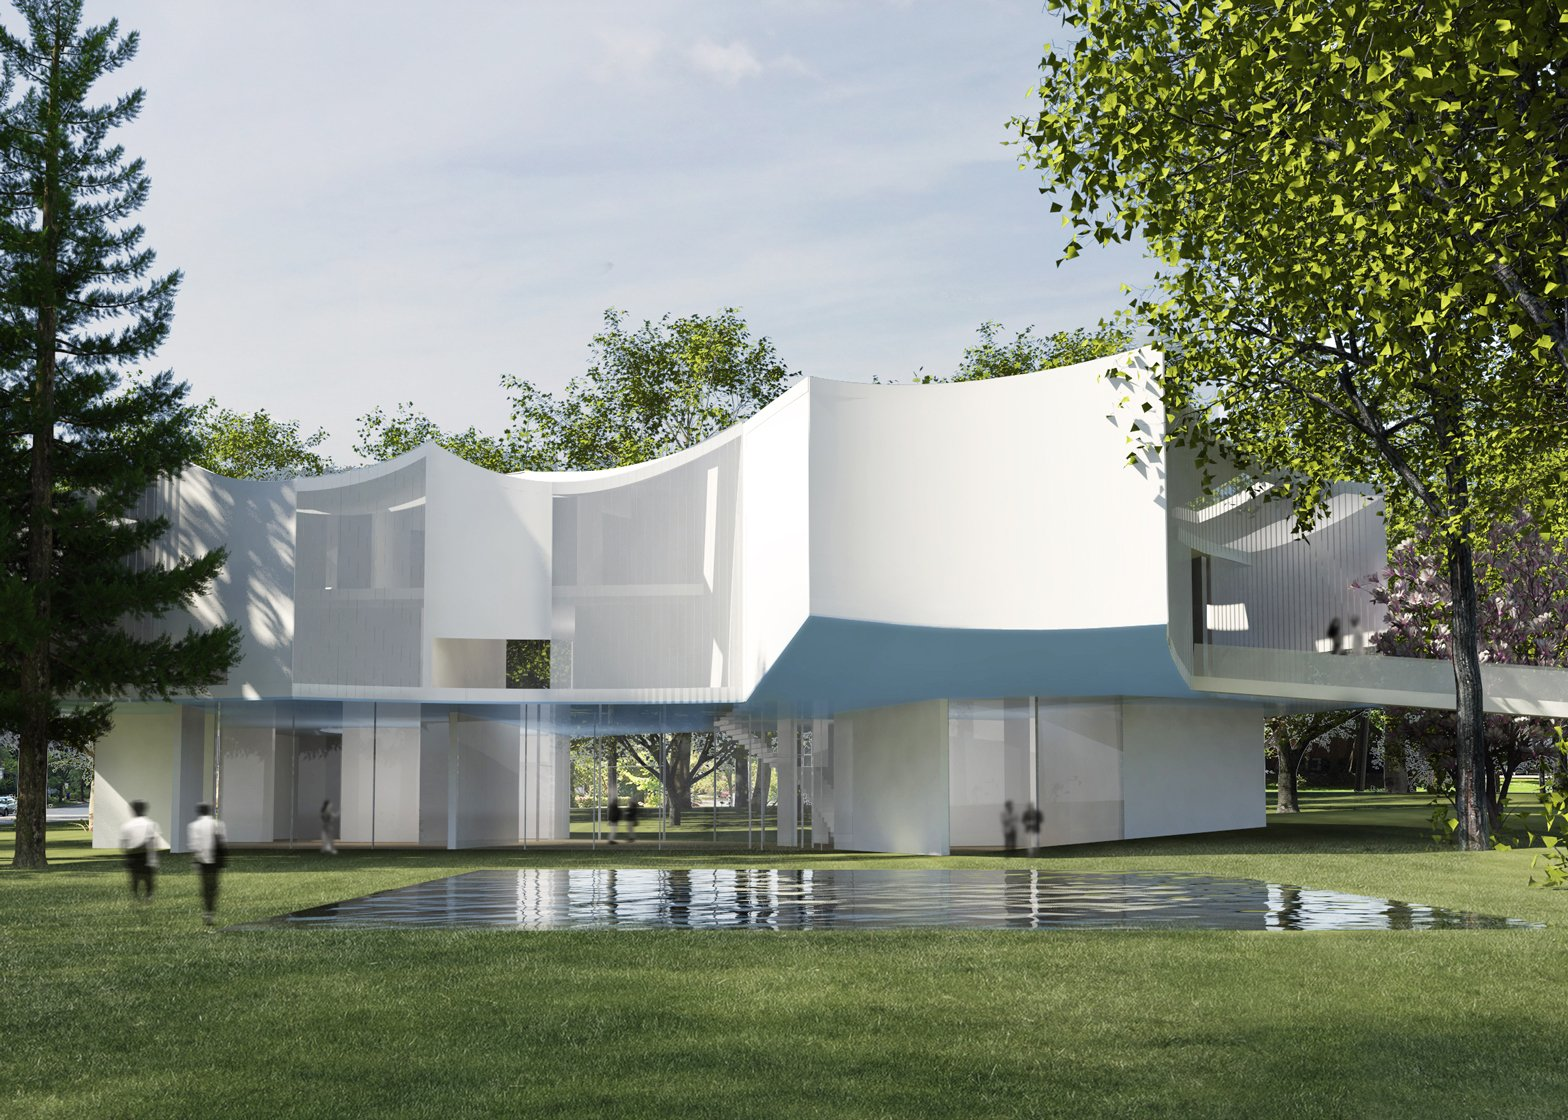 Steven Holl arts centre in Pennsylvania